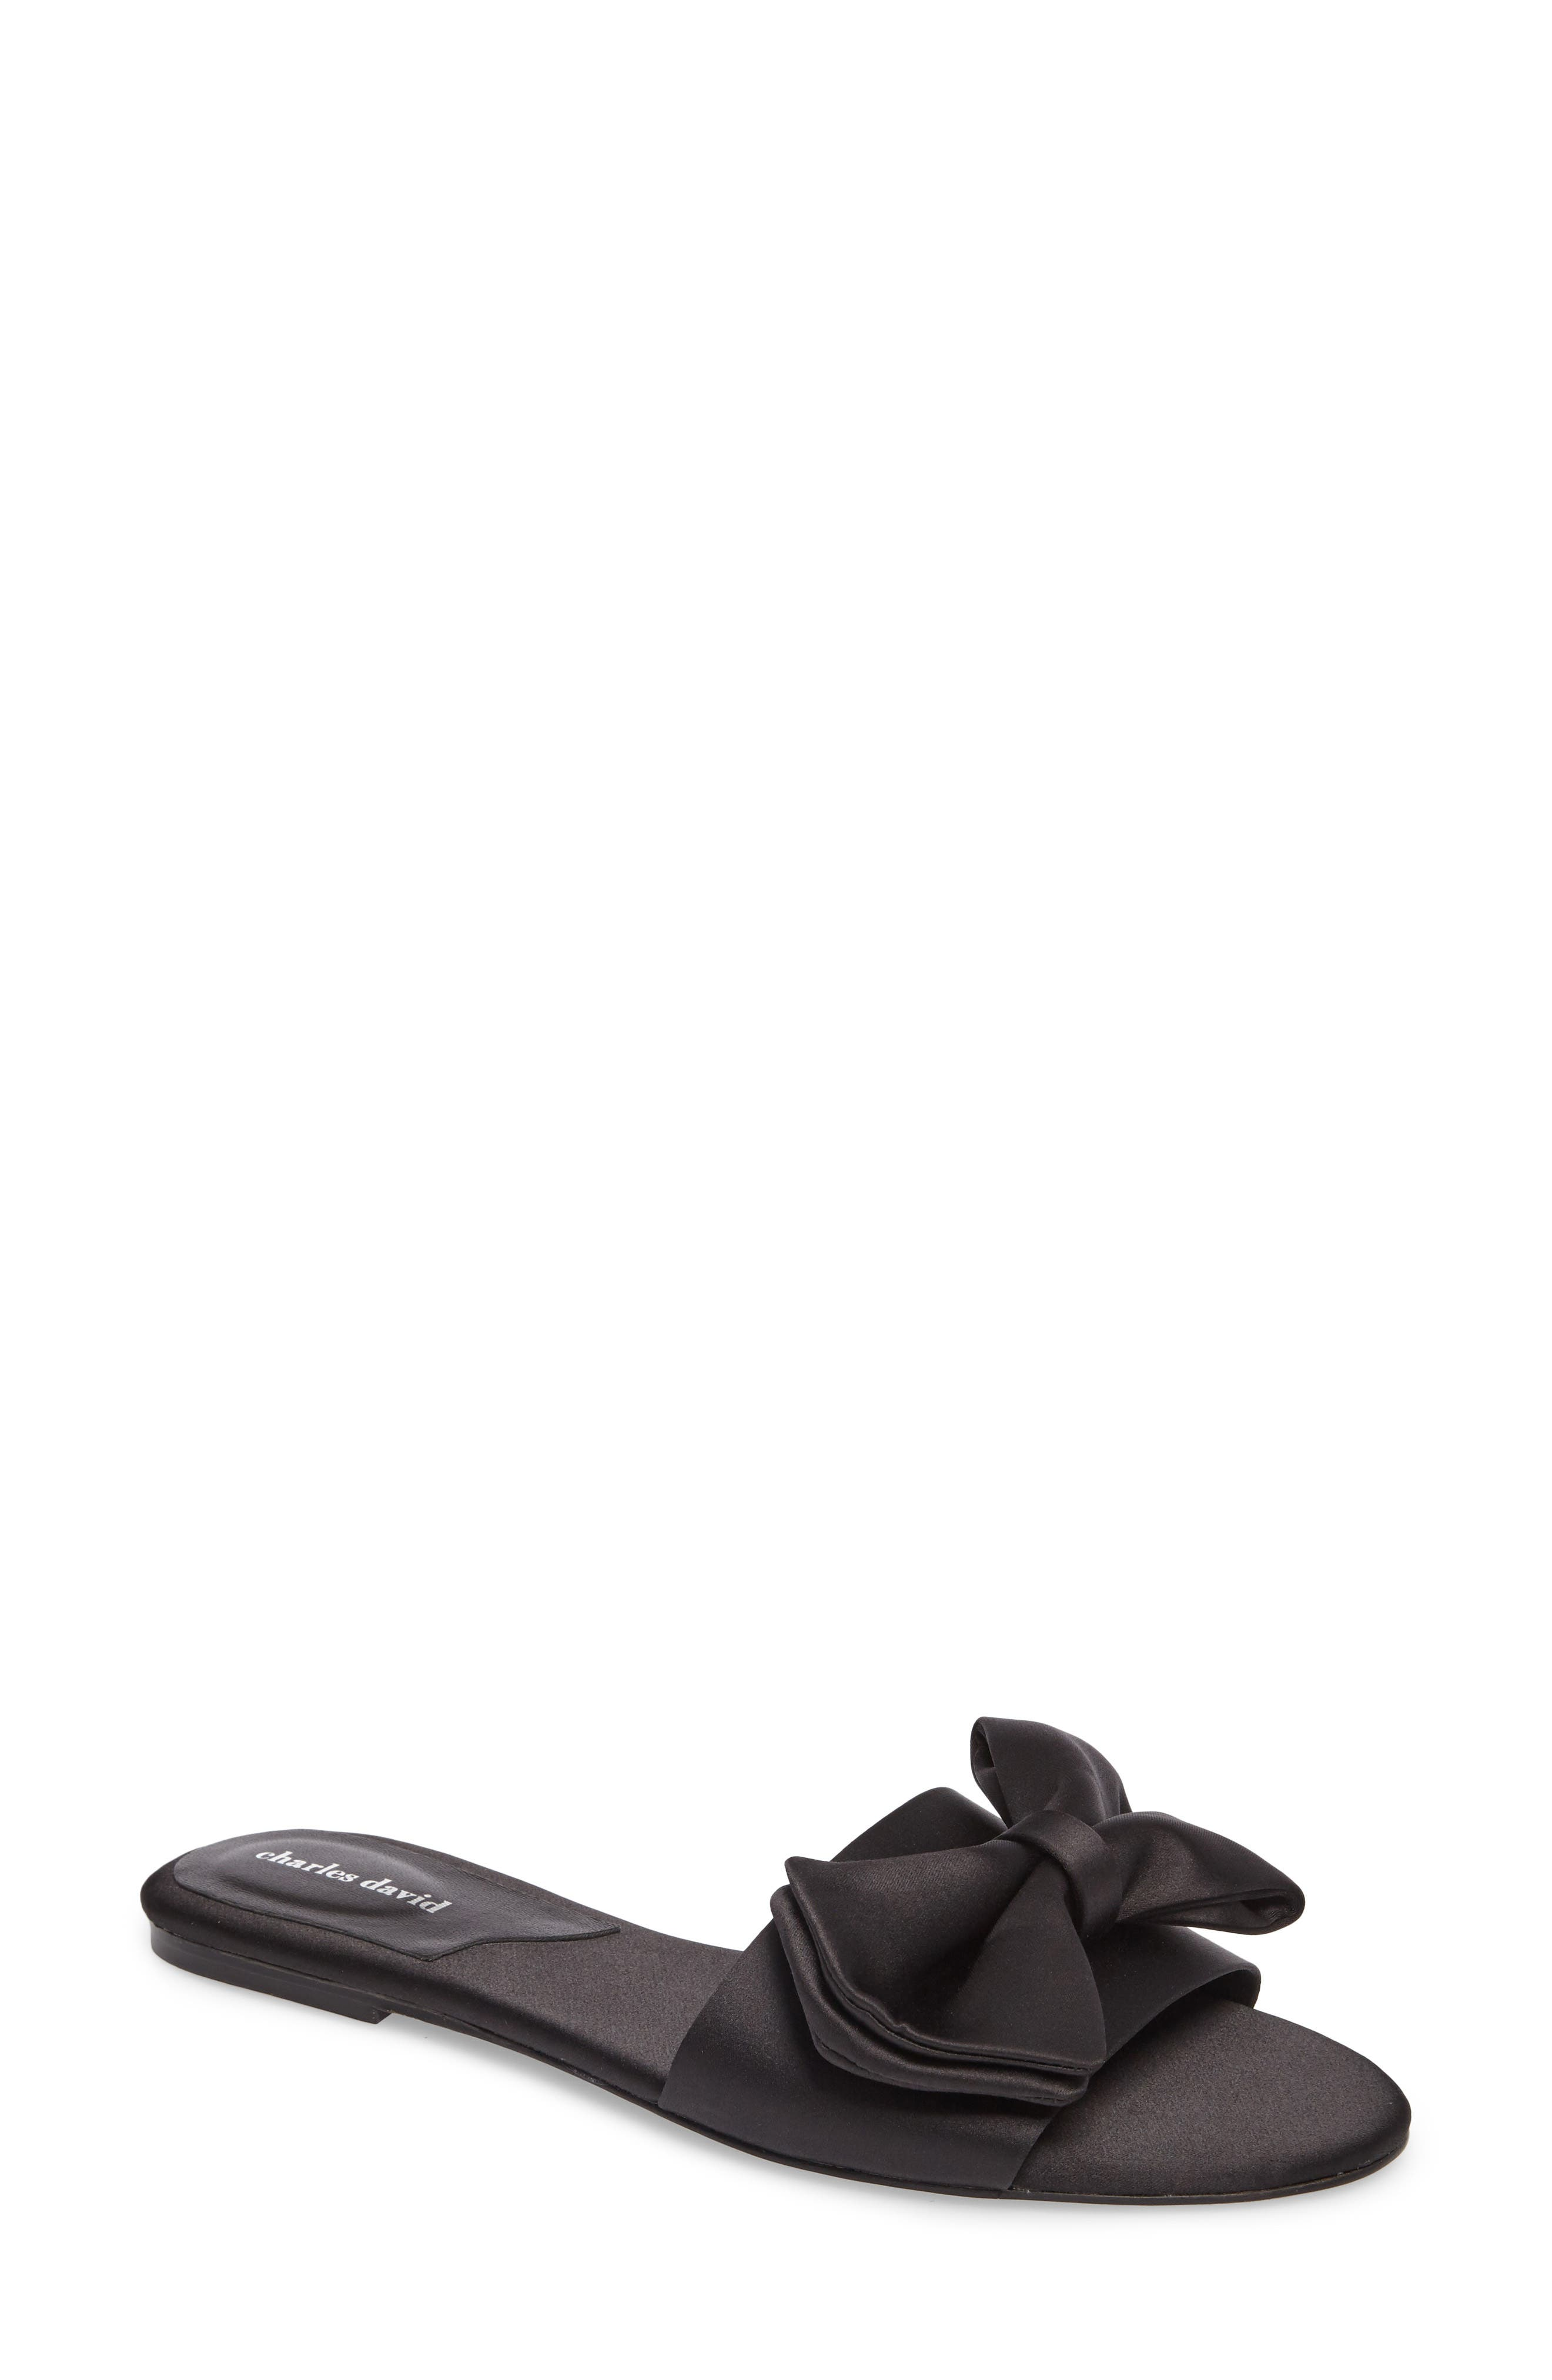 Bow Slide Sandal,                         Main,                         color, 002